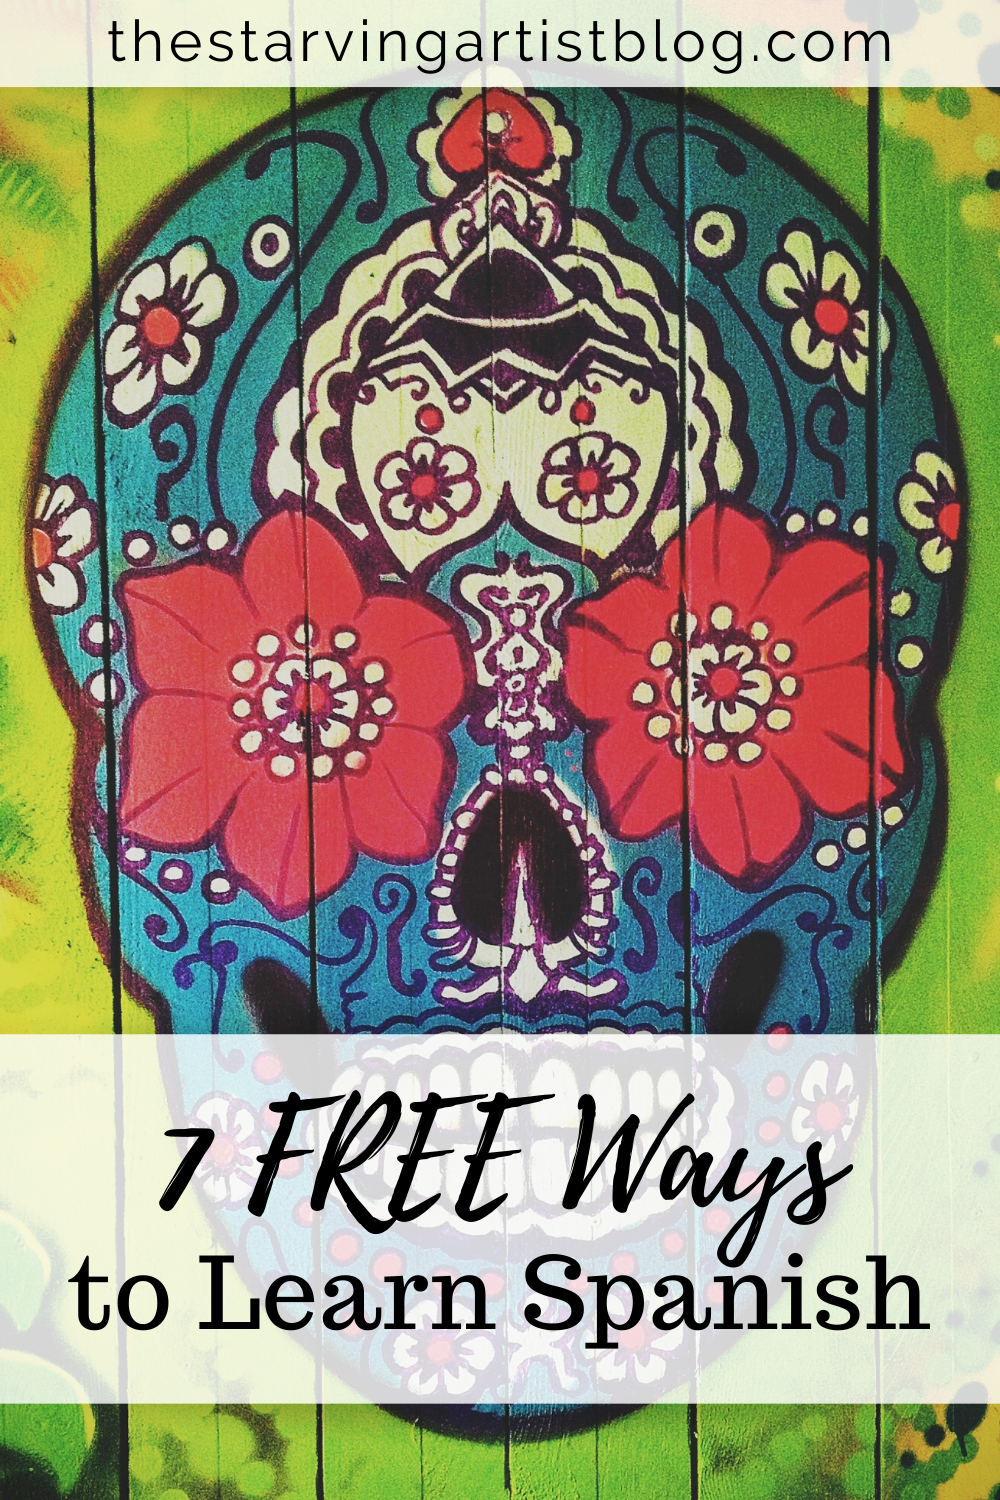 Learn how to speak Spanish for free using these 7 methods